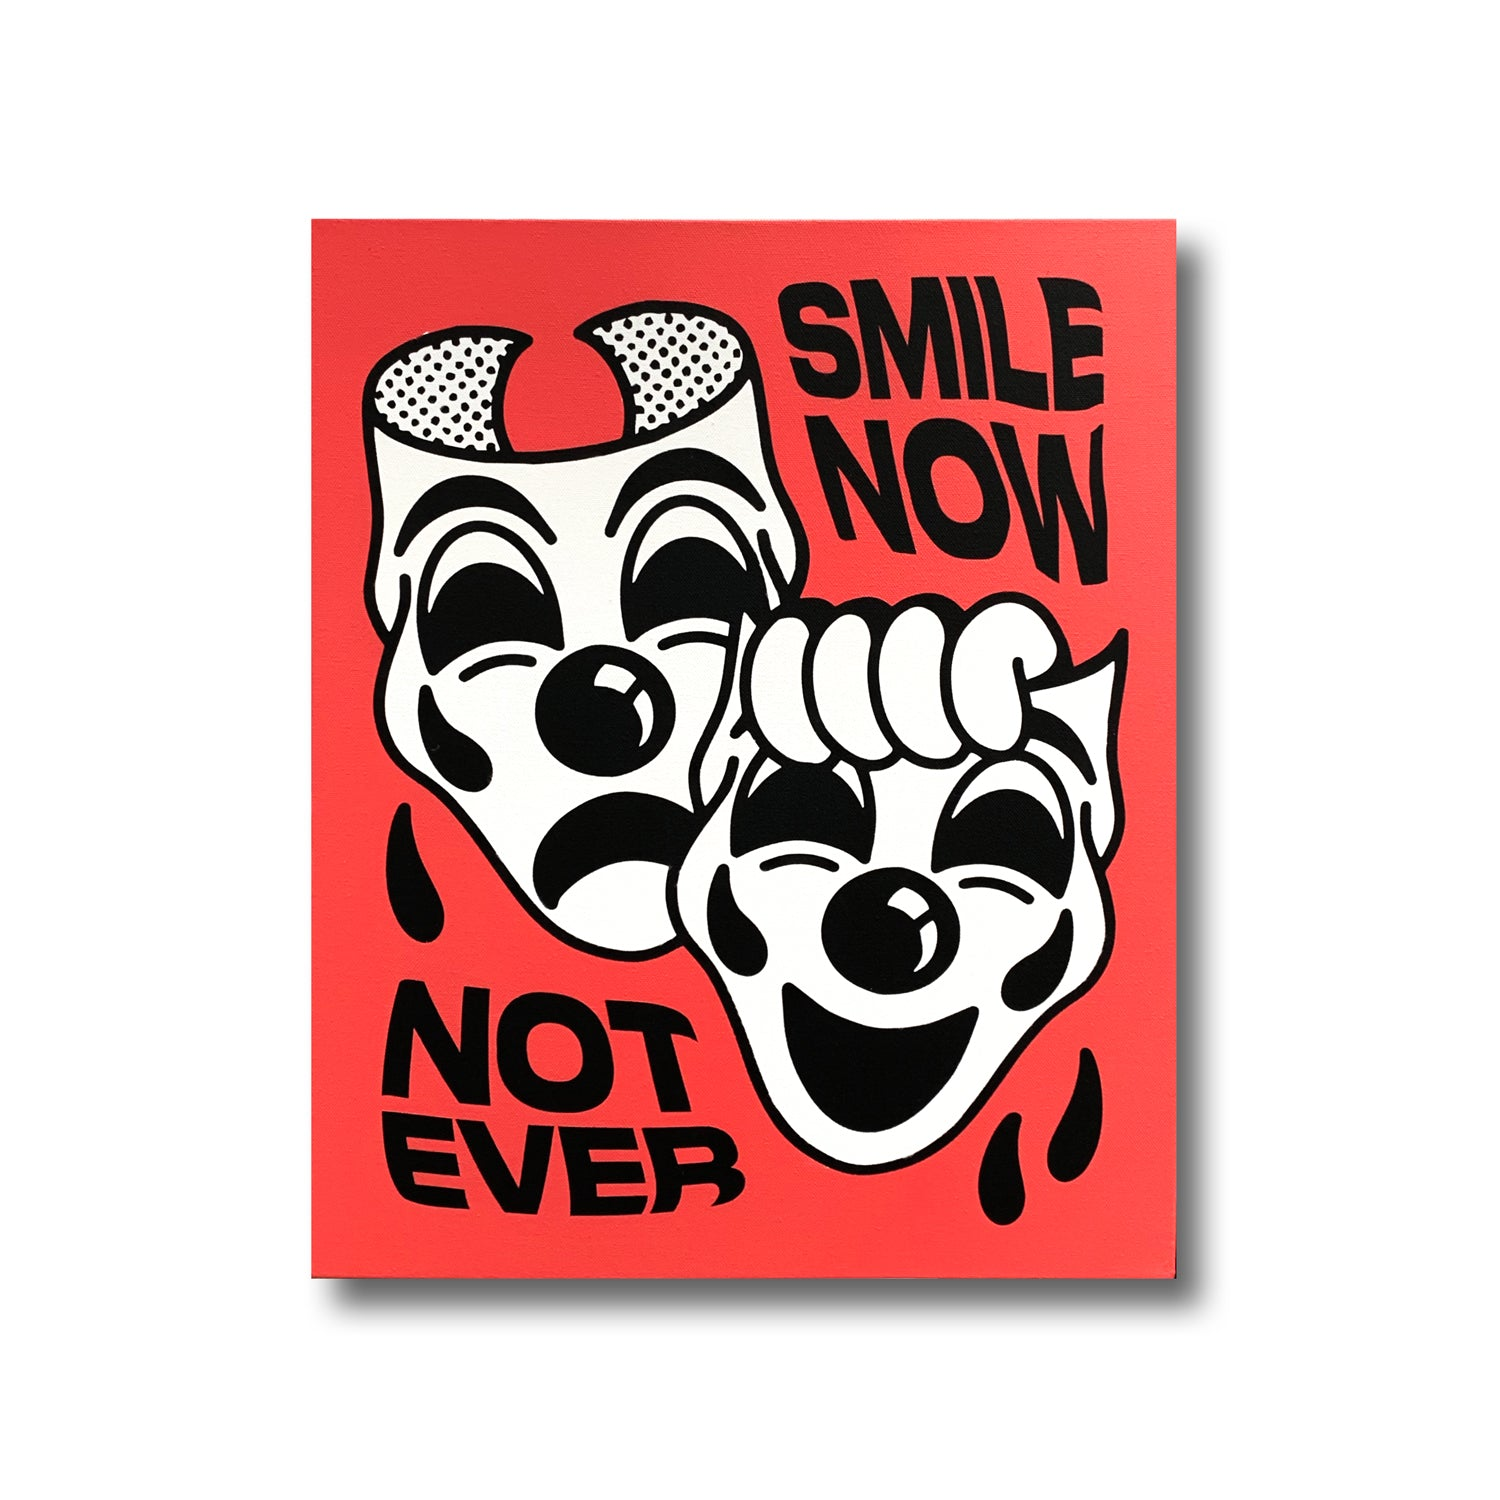 Smile Now Not Ever - Last Ones Studio